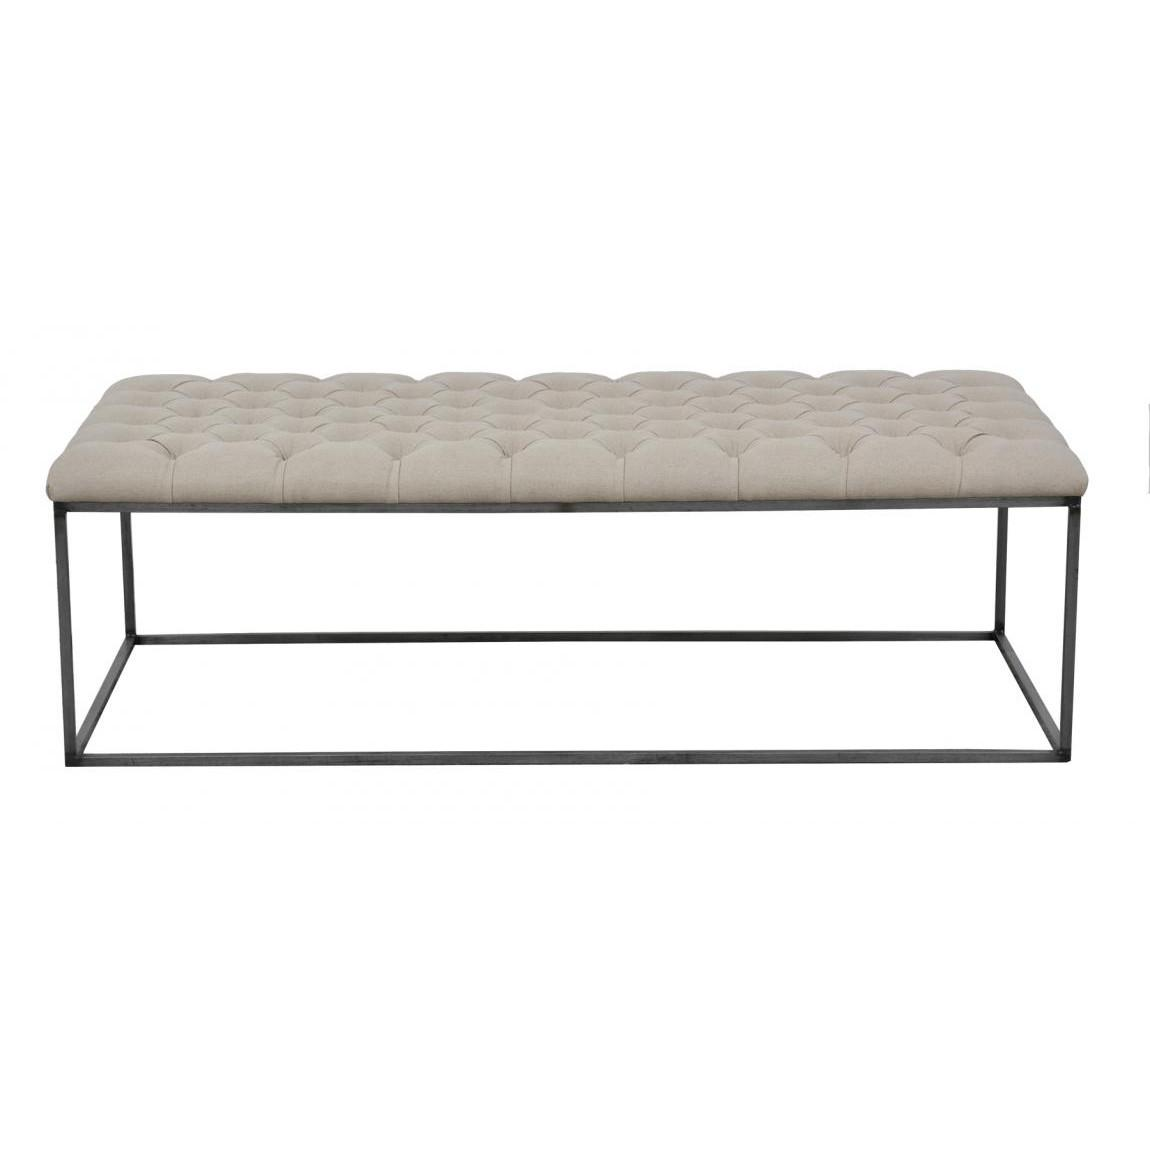 Tufted Coffee Table Home Design Ideas Padded